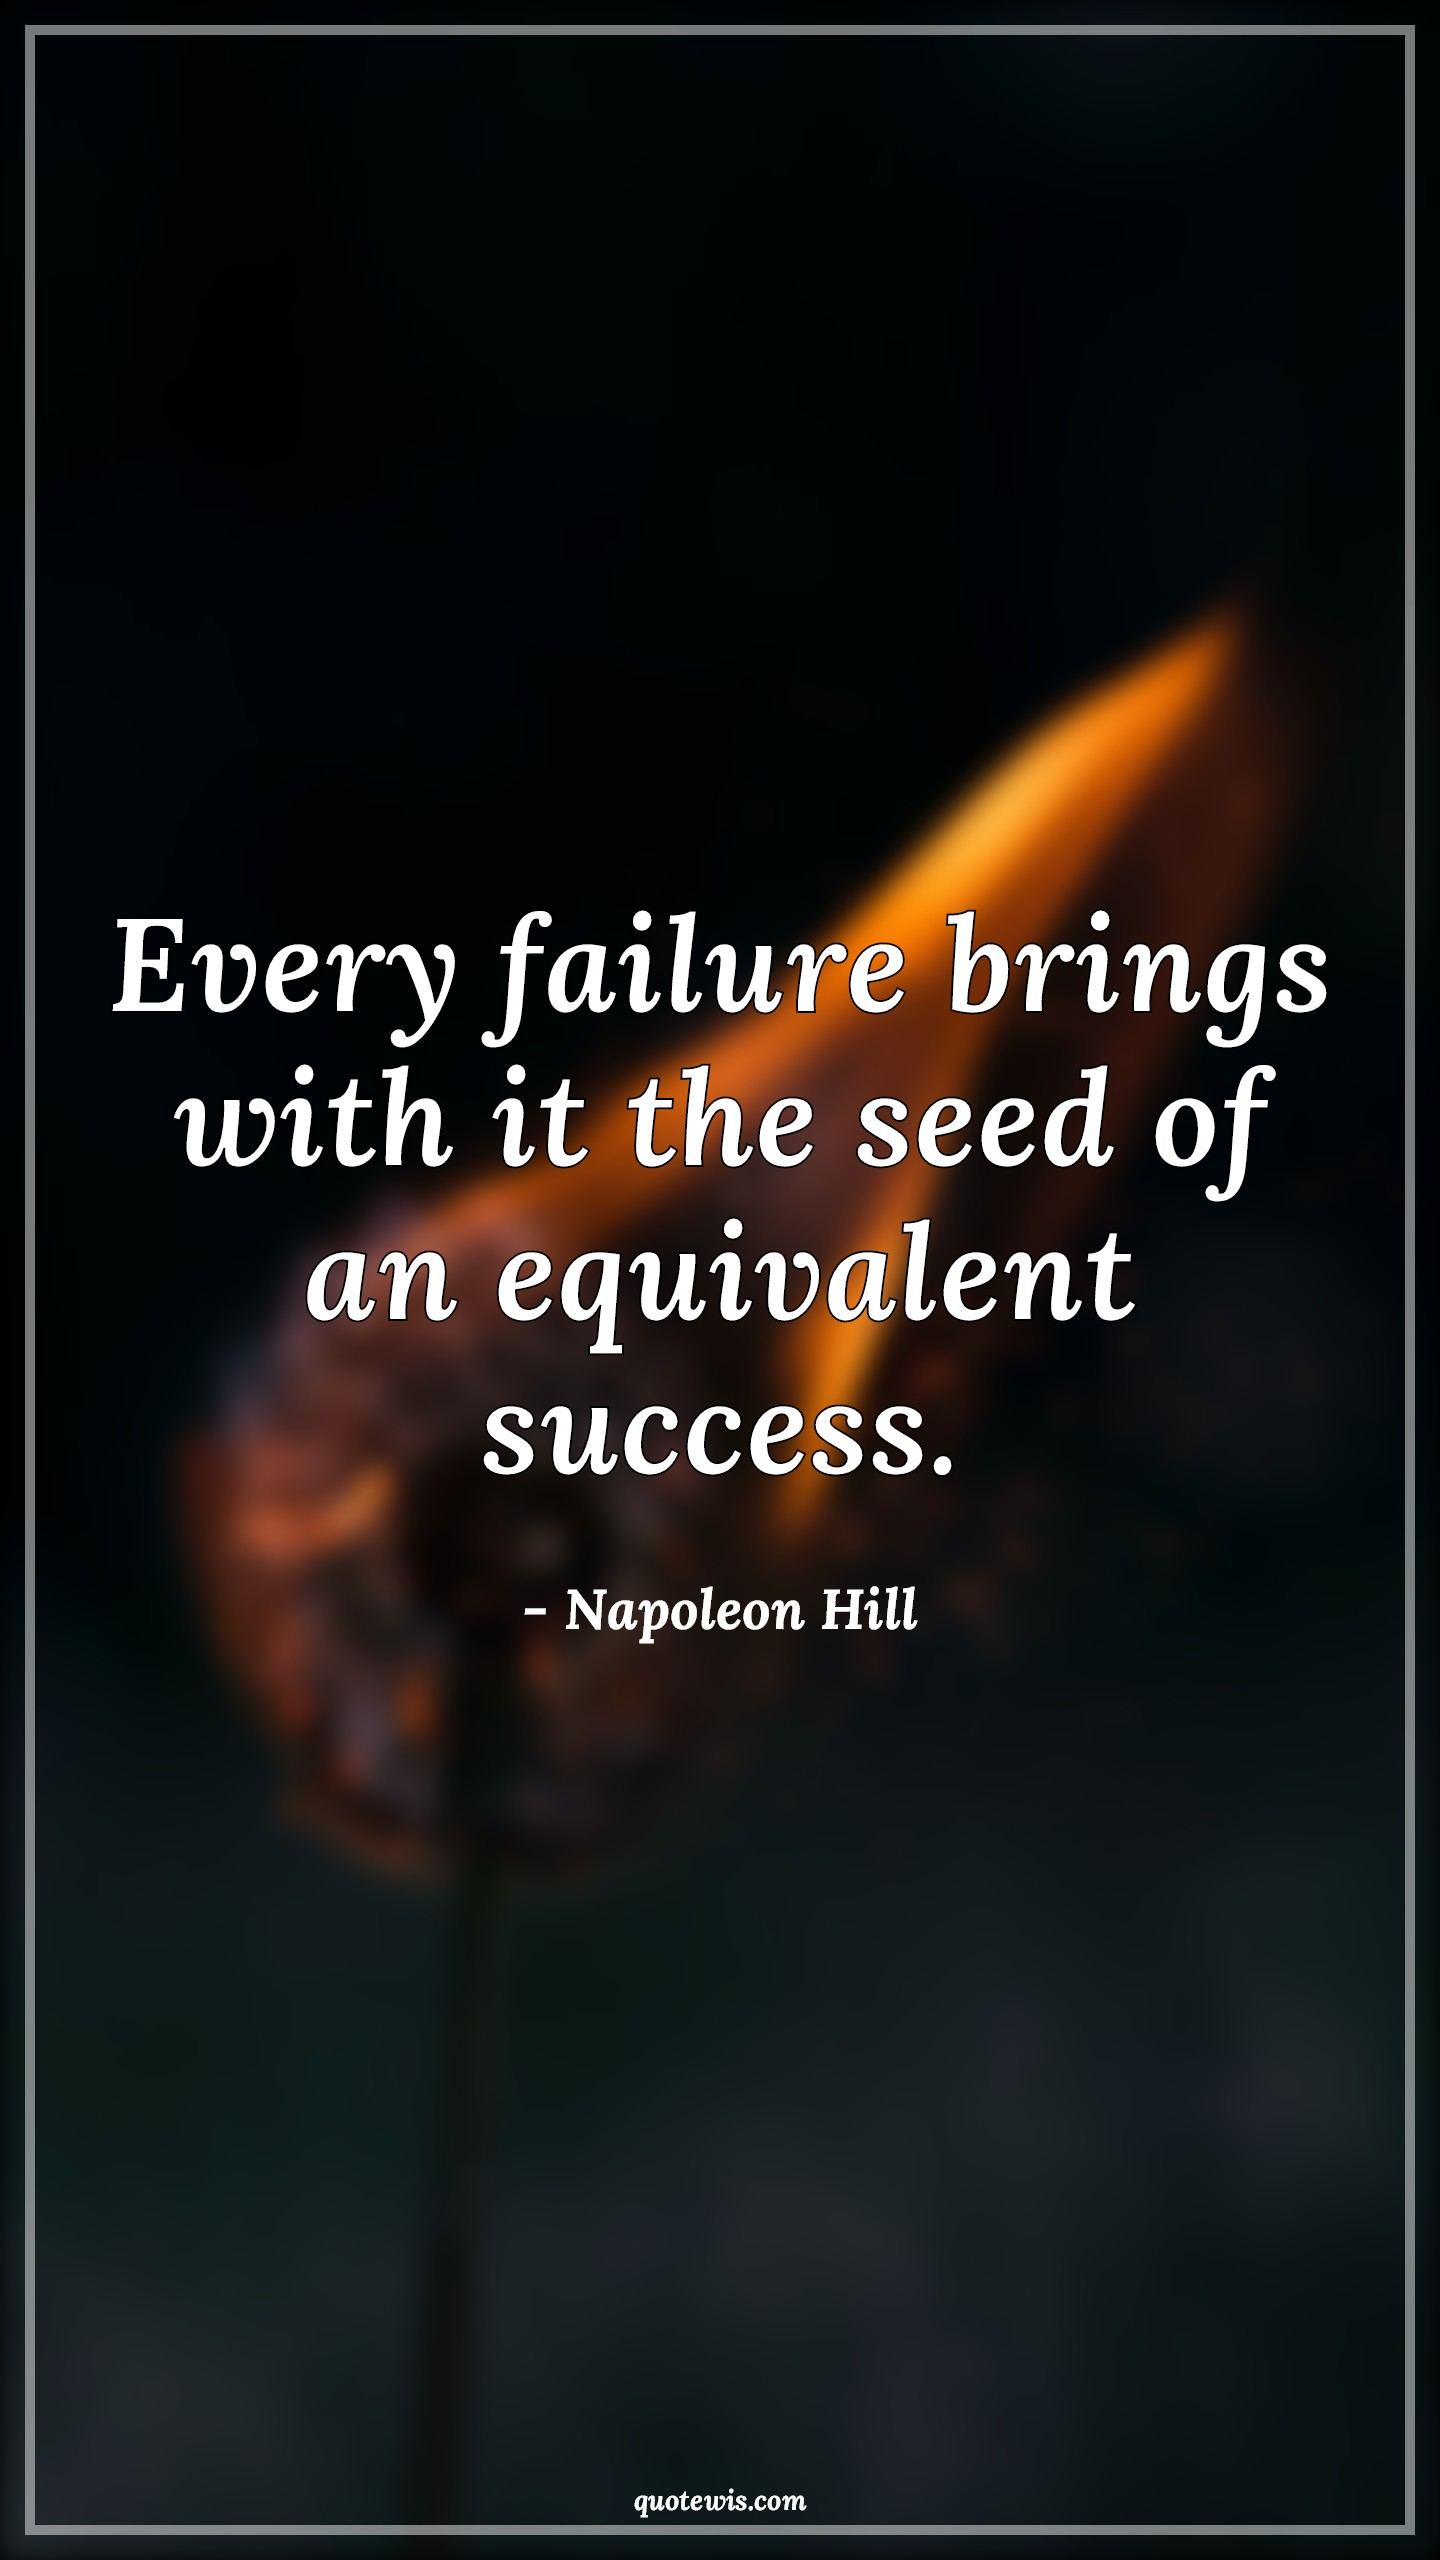 Every failure brings with it the seed of an equivalent success.